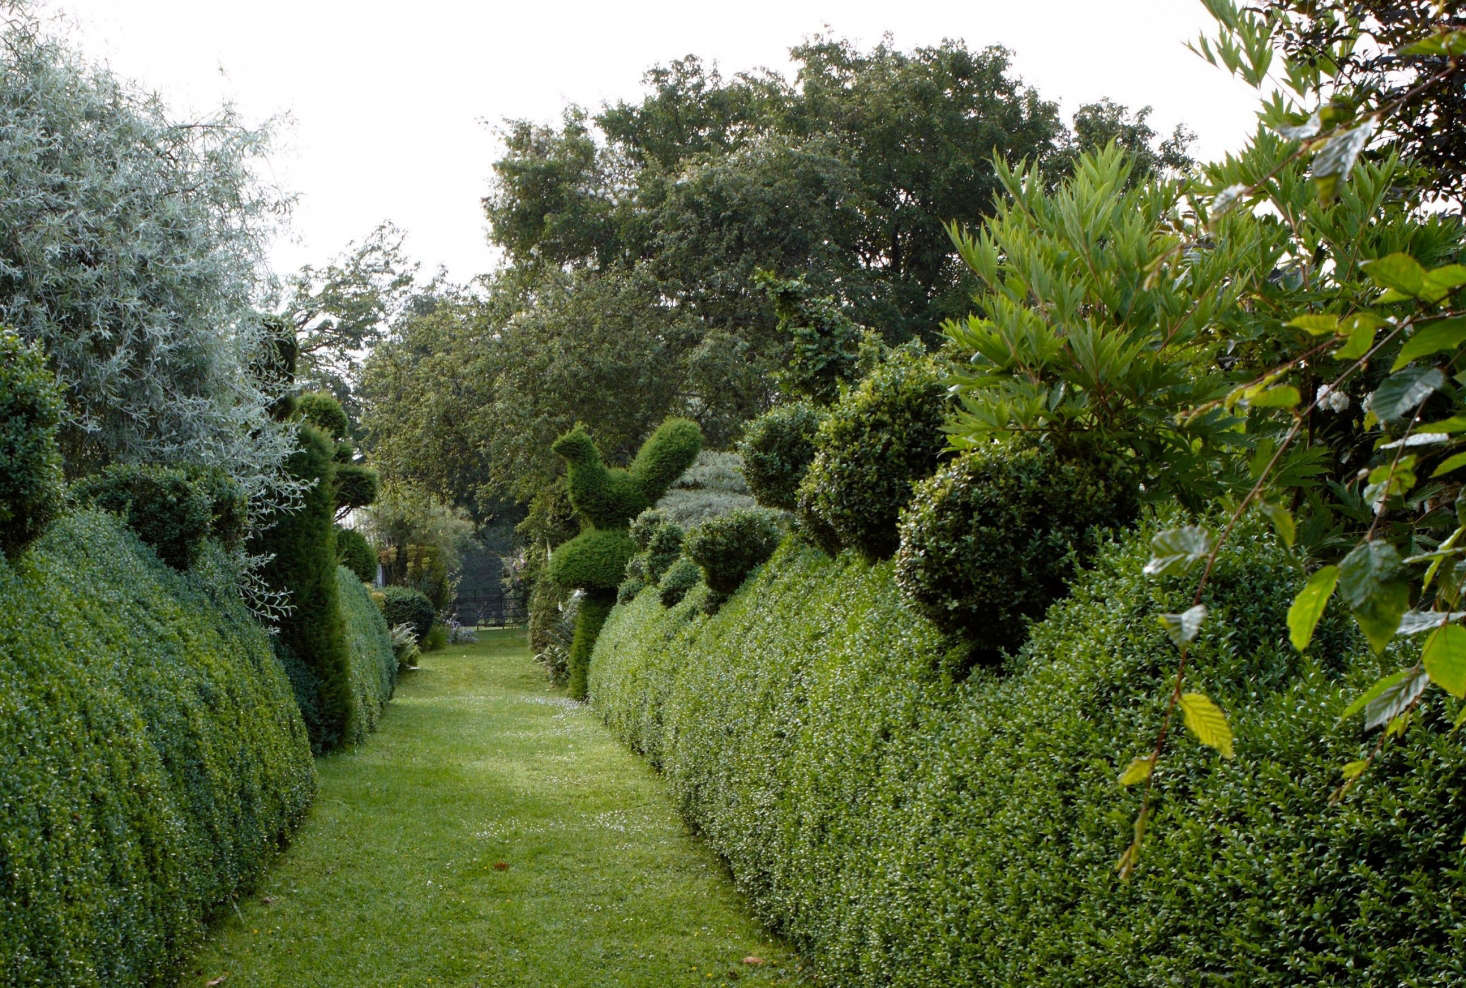 English boxwood tamed and topiarized, through judicious pruning. Photograph by Britt Willoughby Dyer.